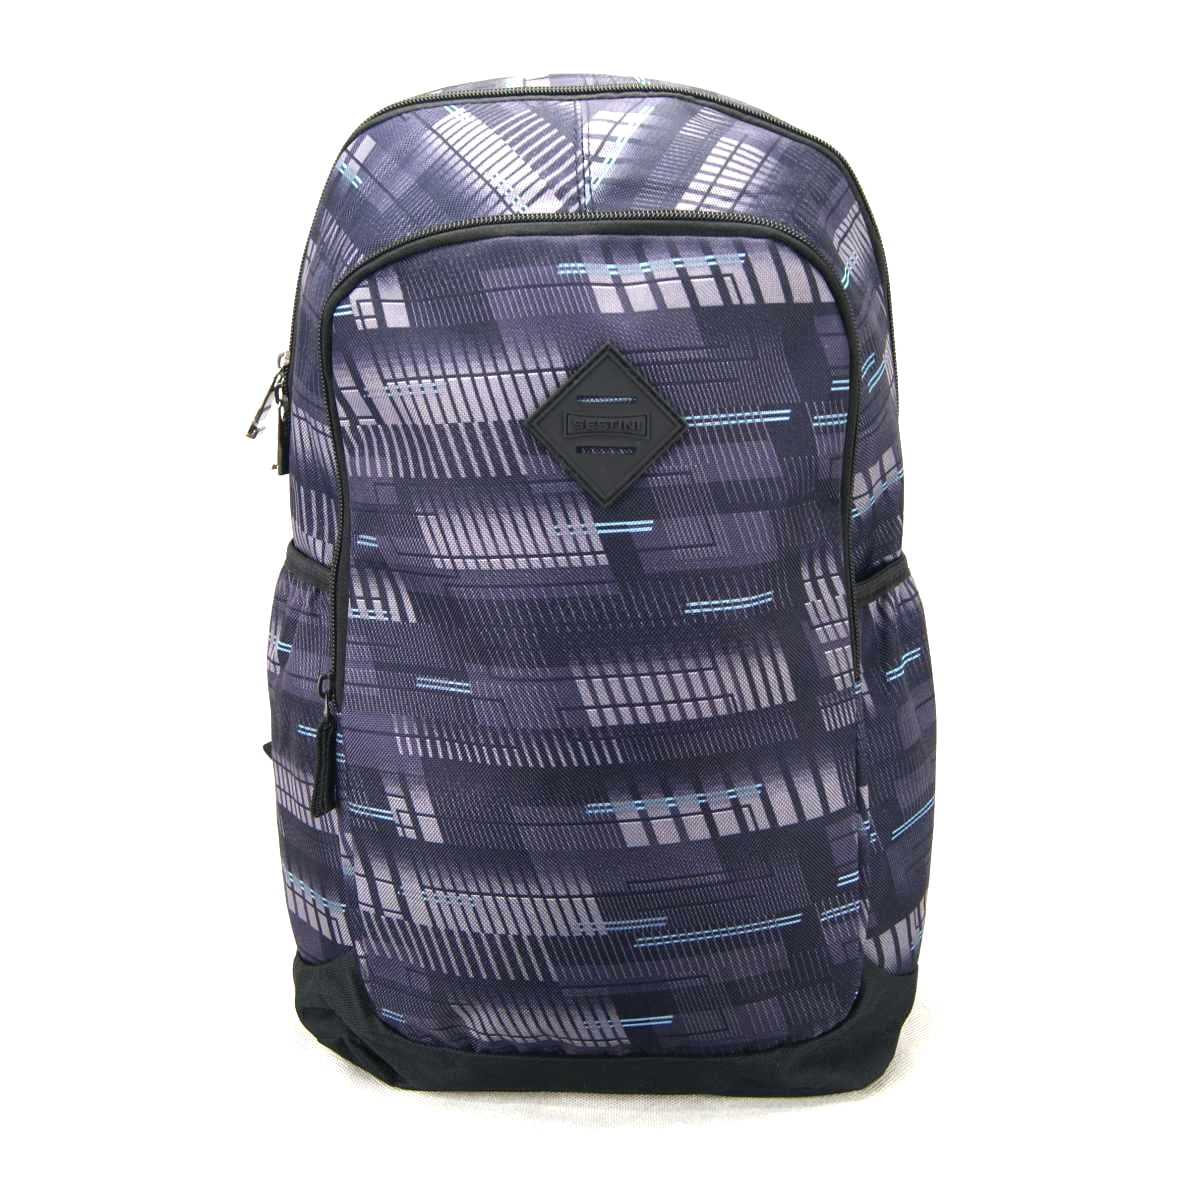 490b1164d Mochila Sestini Magic Flash 075517-90